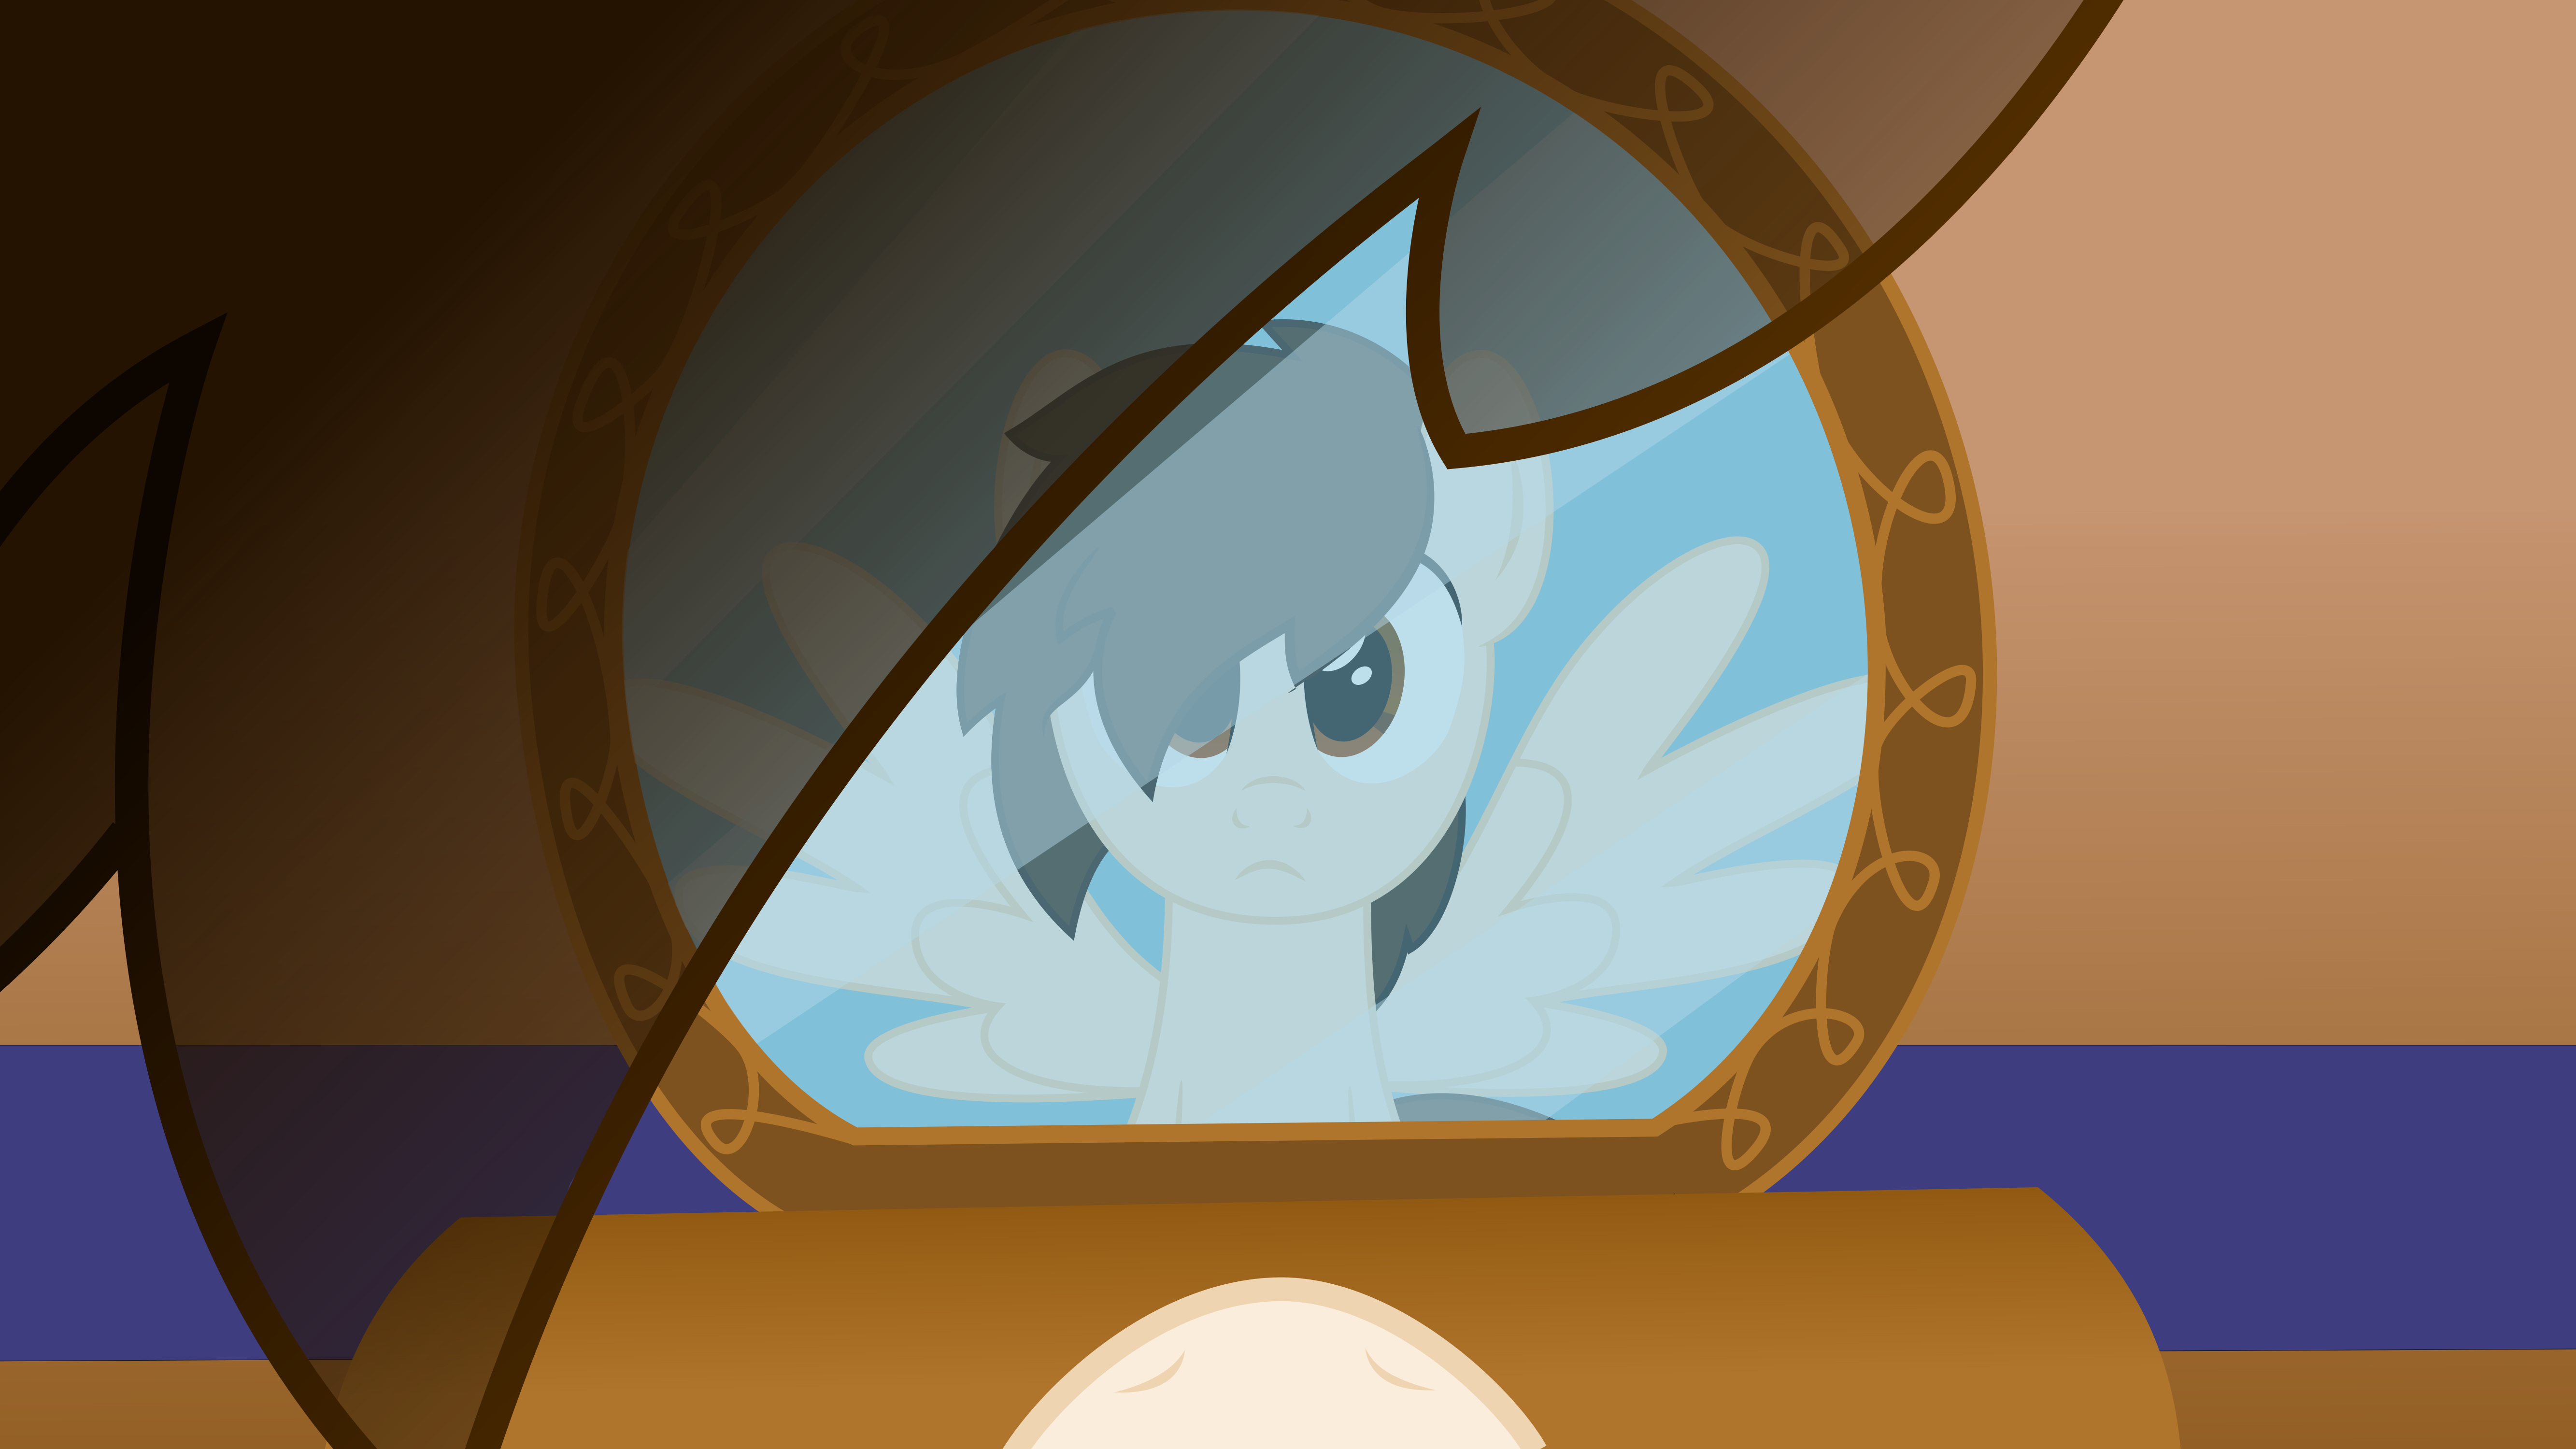 console command POV by MLP-Scribbles on DeviantArt